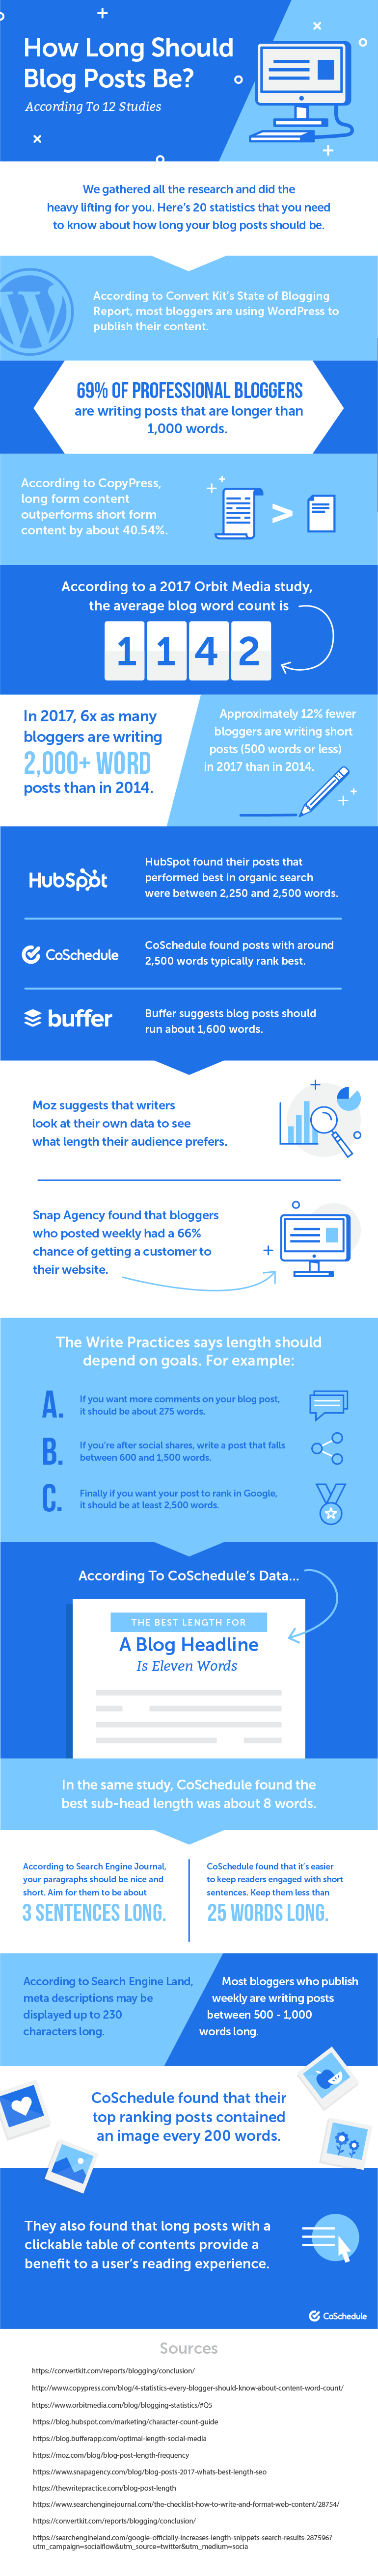 How Long Should Blog Posts Be? Infographic